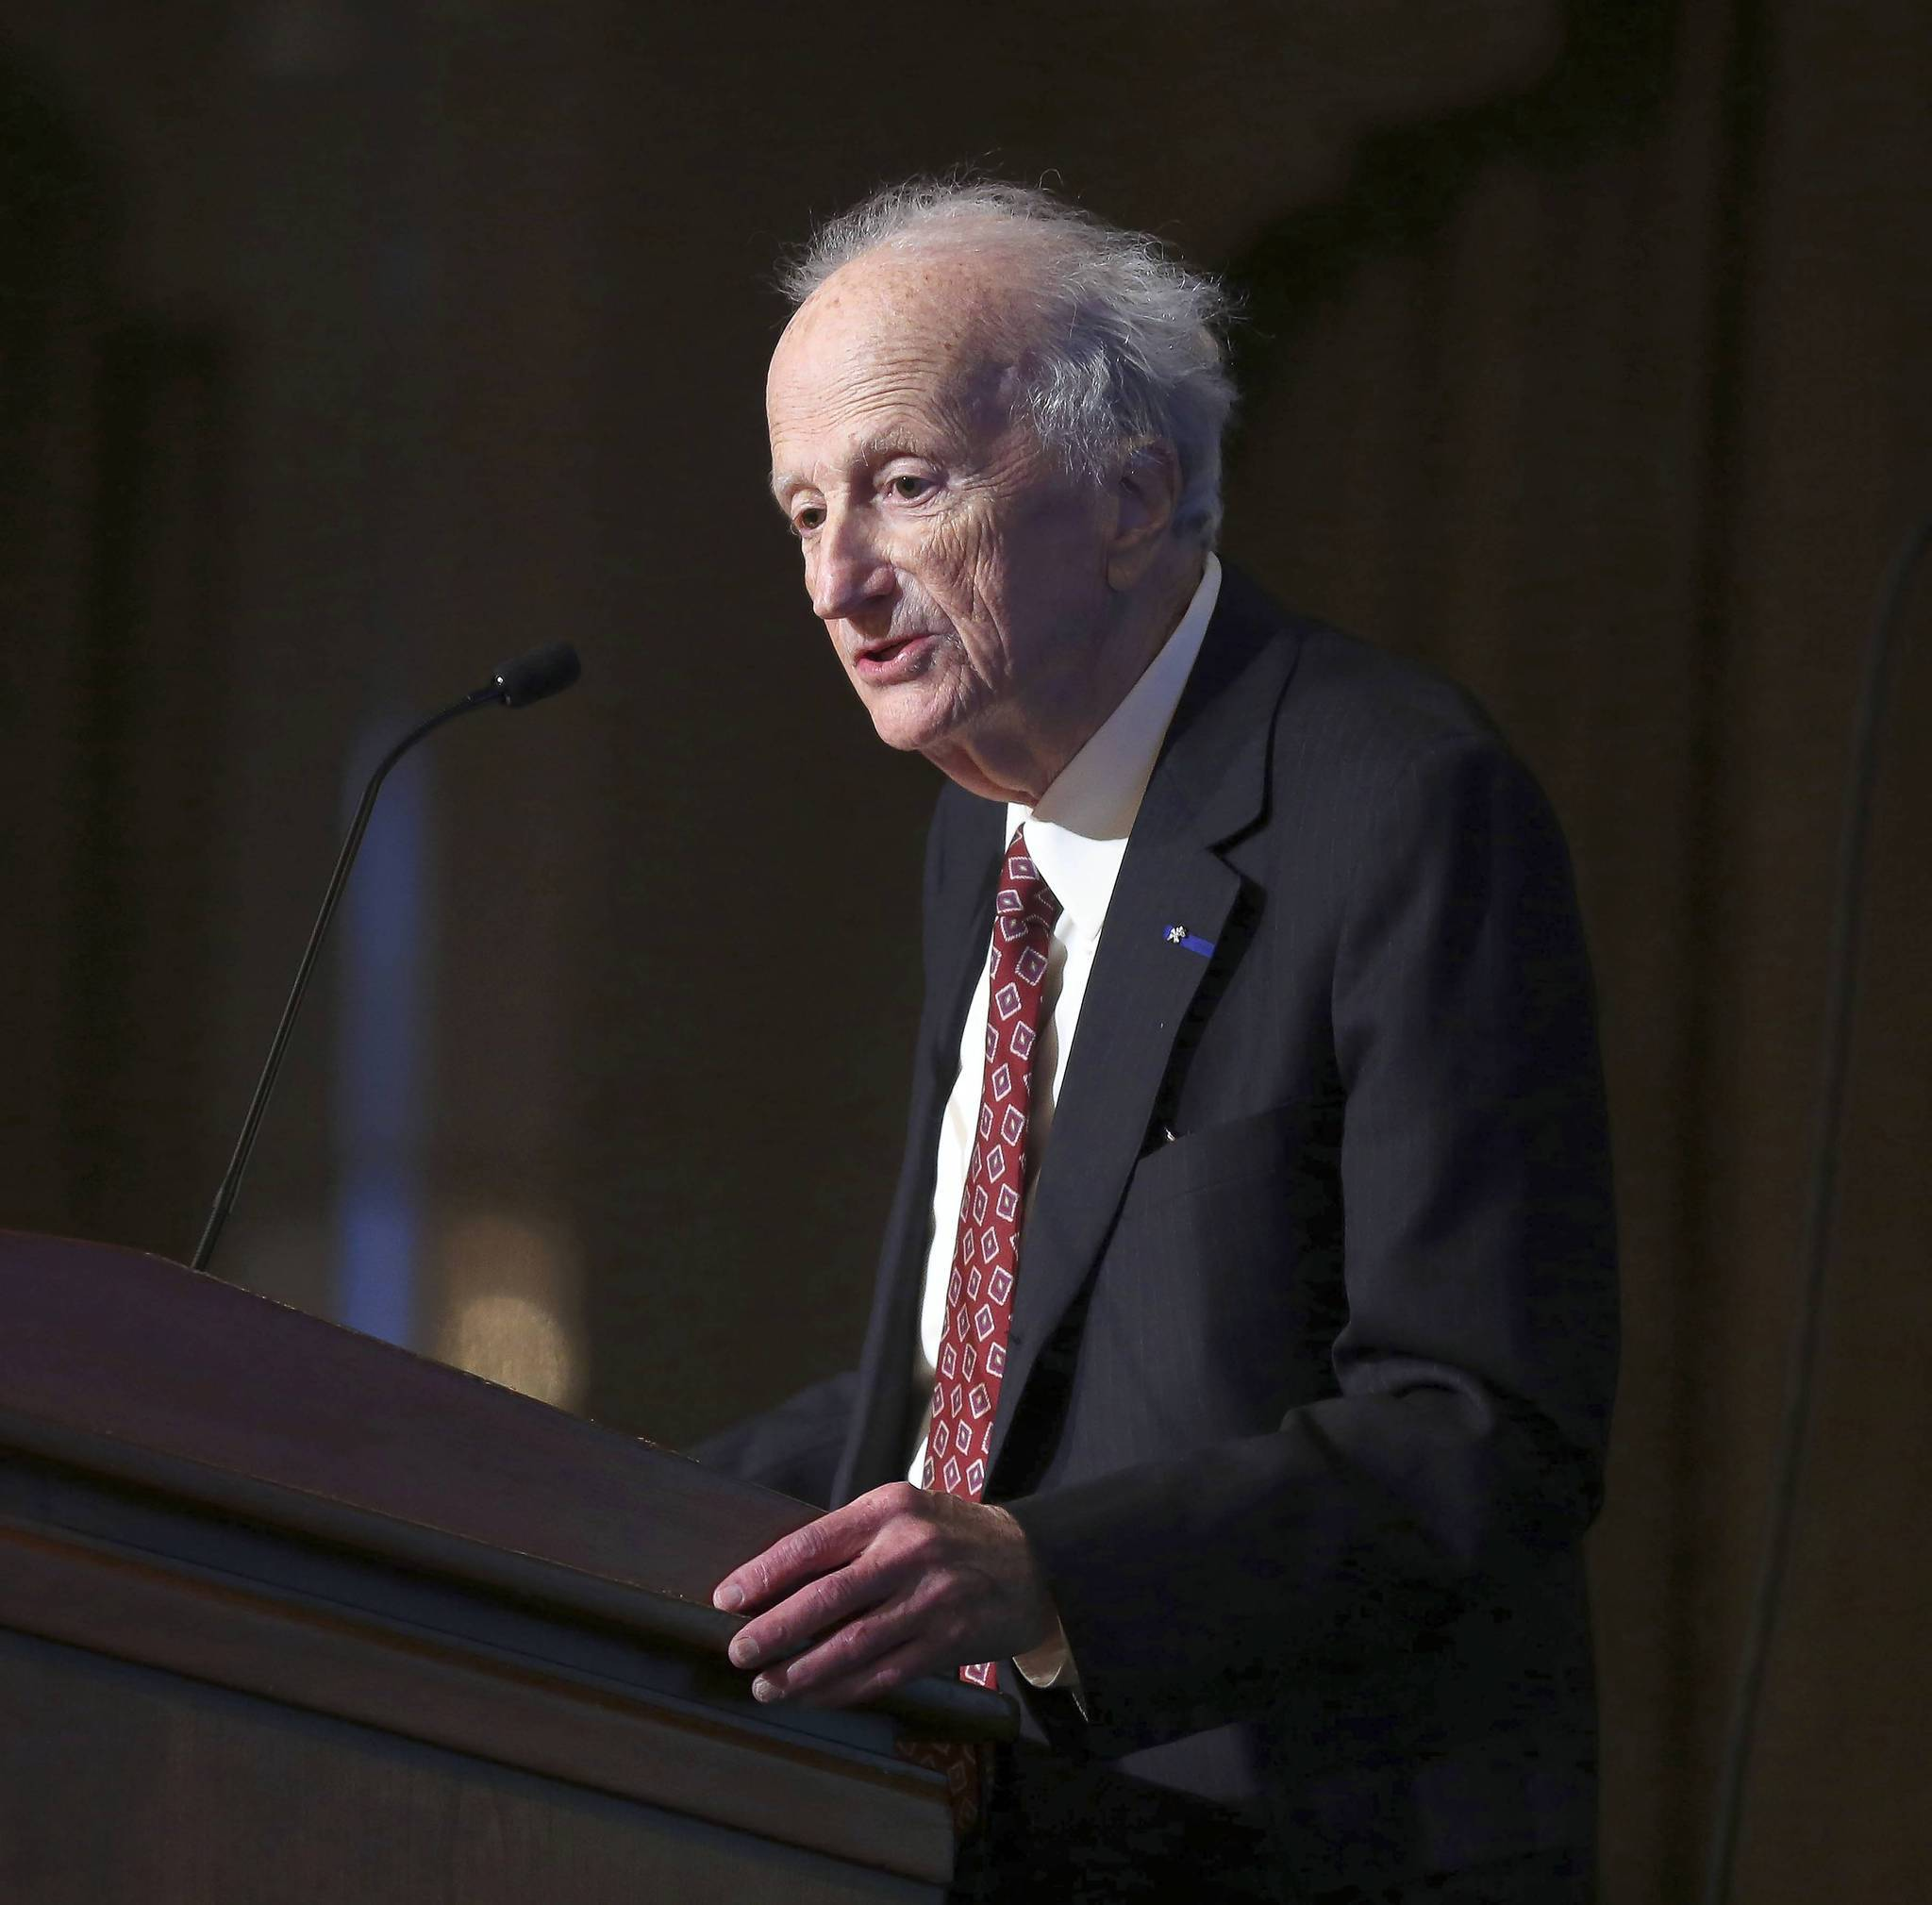 Nobel Prize laureate Gary S. Becker gives a presentation on institutions, government, business, and human capital at the third Annual CME Group Lecture on Global Financial Markets.